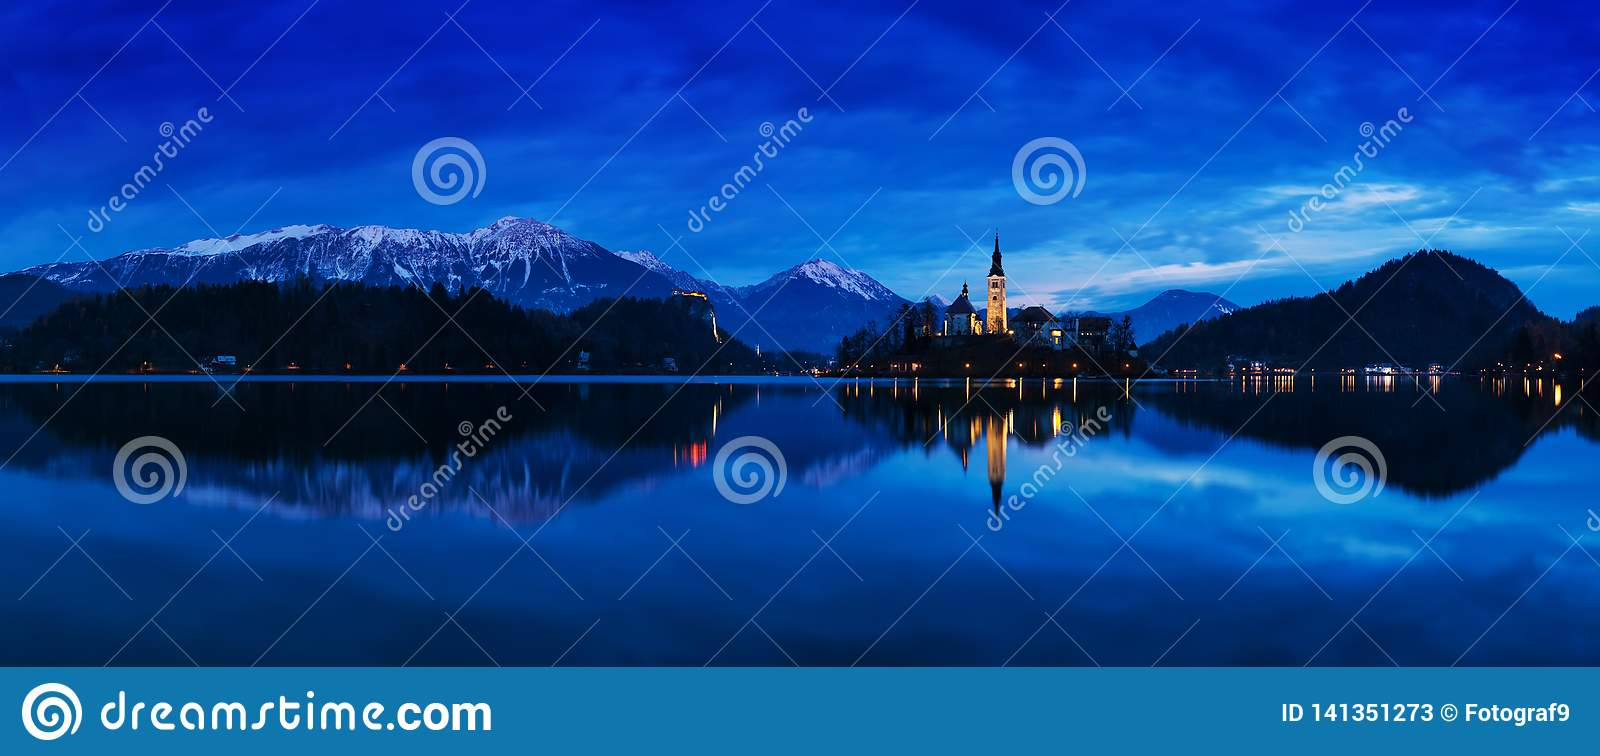 Beautiful view of famous Bled Island with Catholic Church at scenic Lake Bled with Bled Castle Blejski grad and Julian Alps